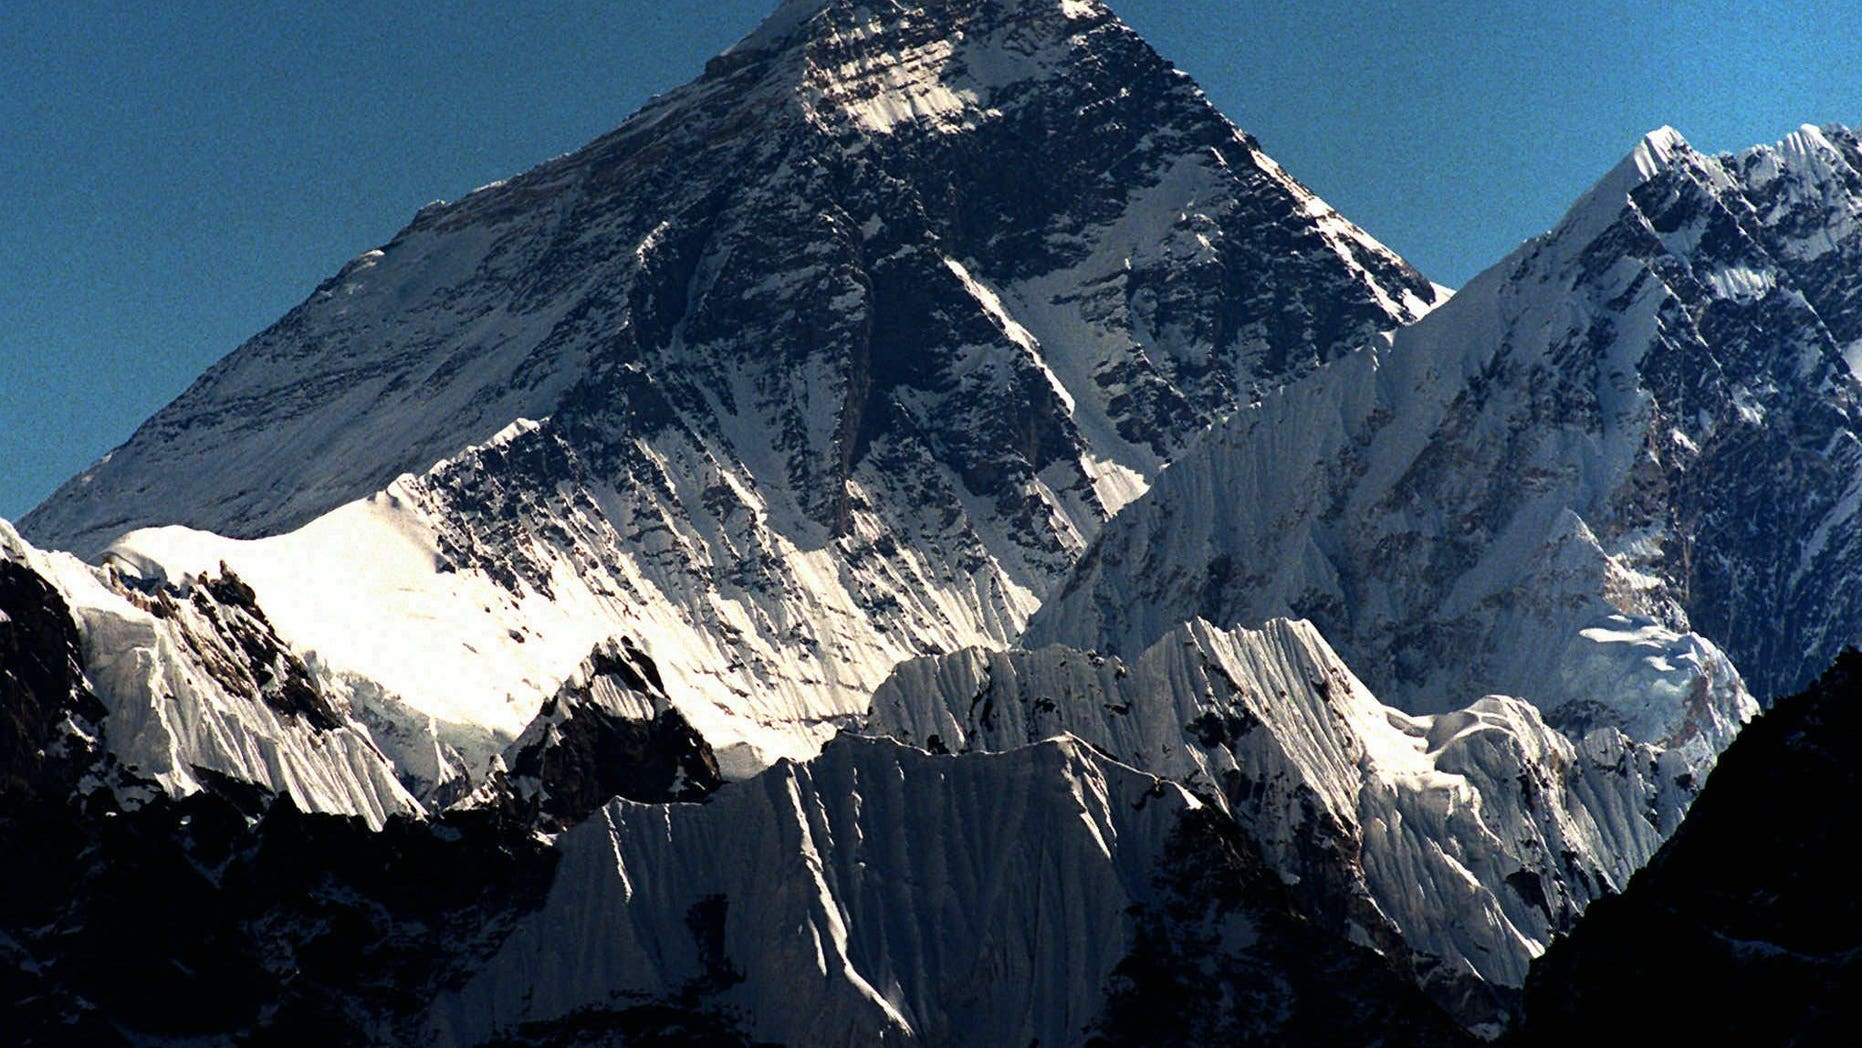 FILE - In this October 1996 file photo, Mount Everest is seen from peak Gokyo Ri in Nepal. Chinese state-run mobile news site The Paper reported Wednesday, May 11, 2016, that workers had removed the signatures, dates, doodles and messages left by scores of visitors on two granite tablets on the Chinese side of Mount Everest's northern base camp and plan to name and shame future defilers.(AP Photo/Hans Edinger)